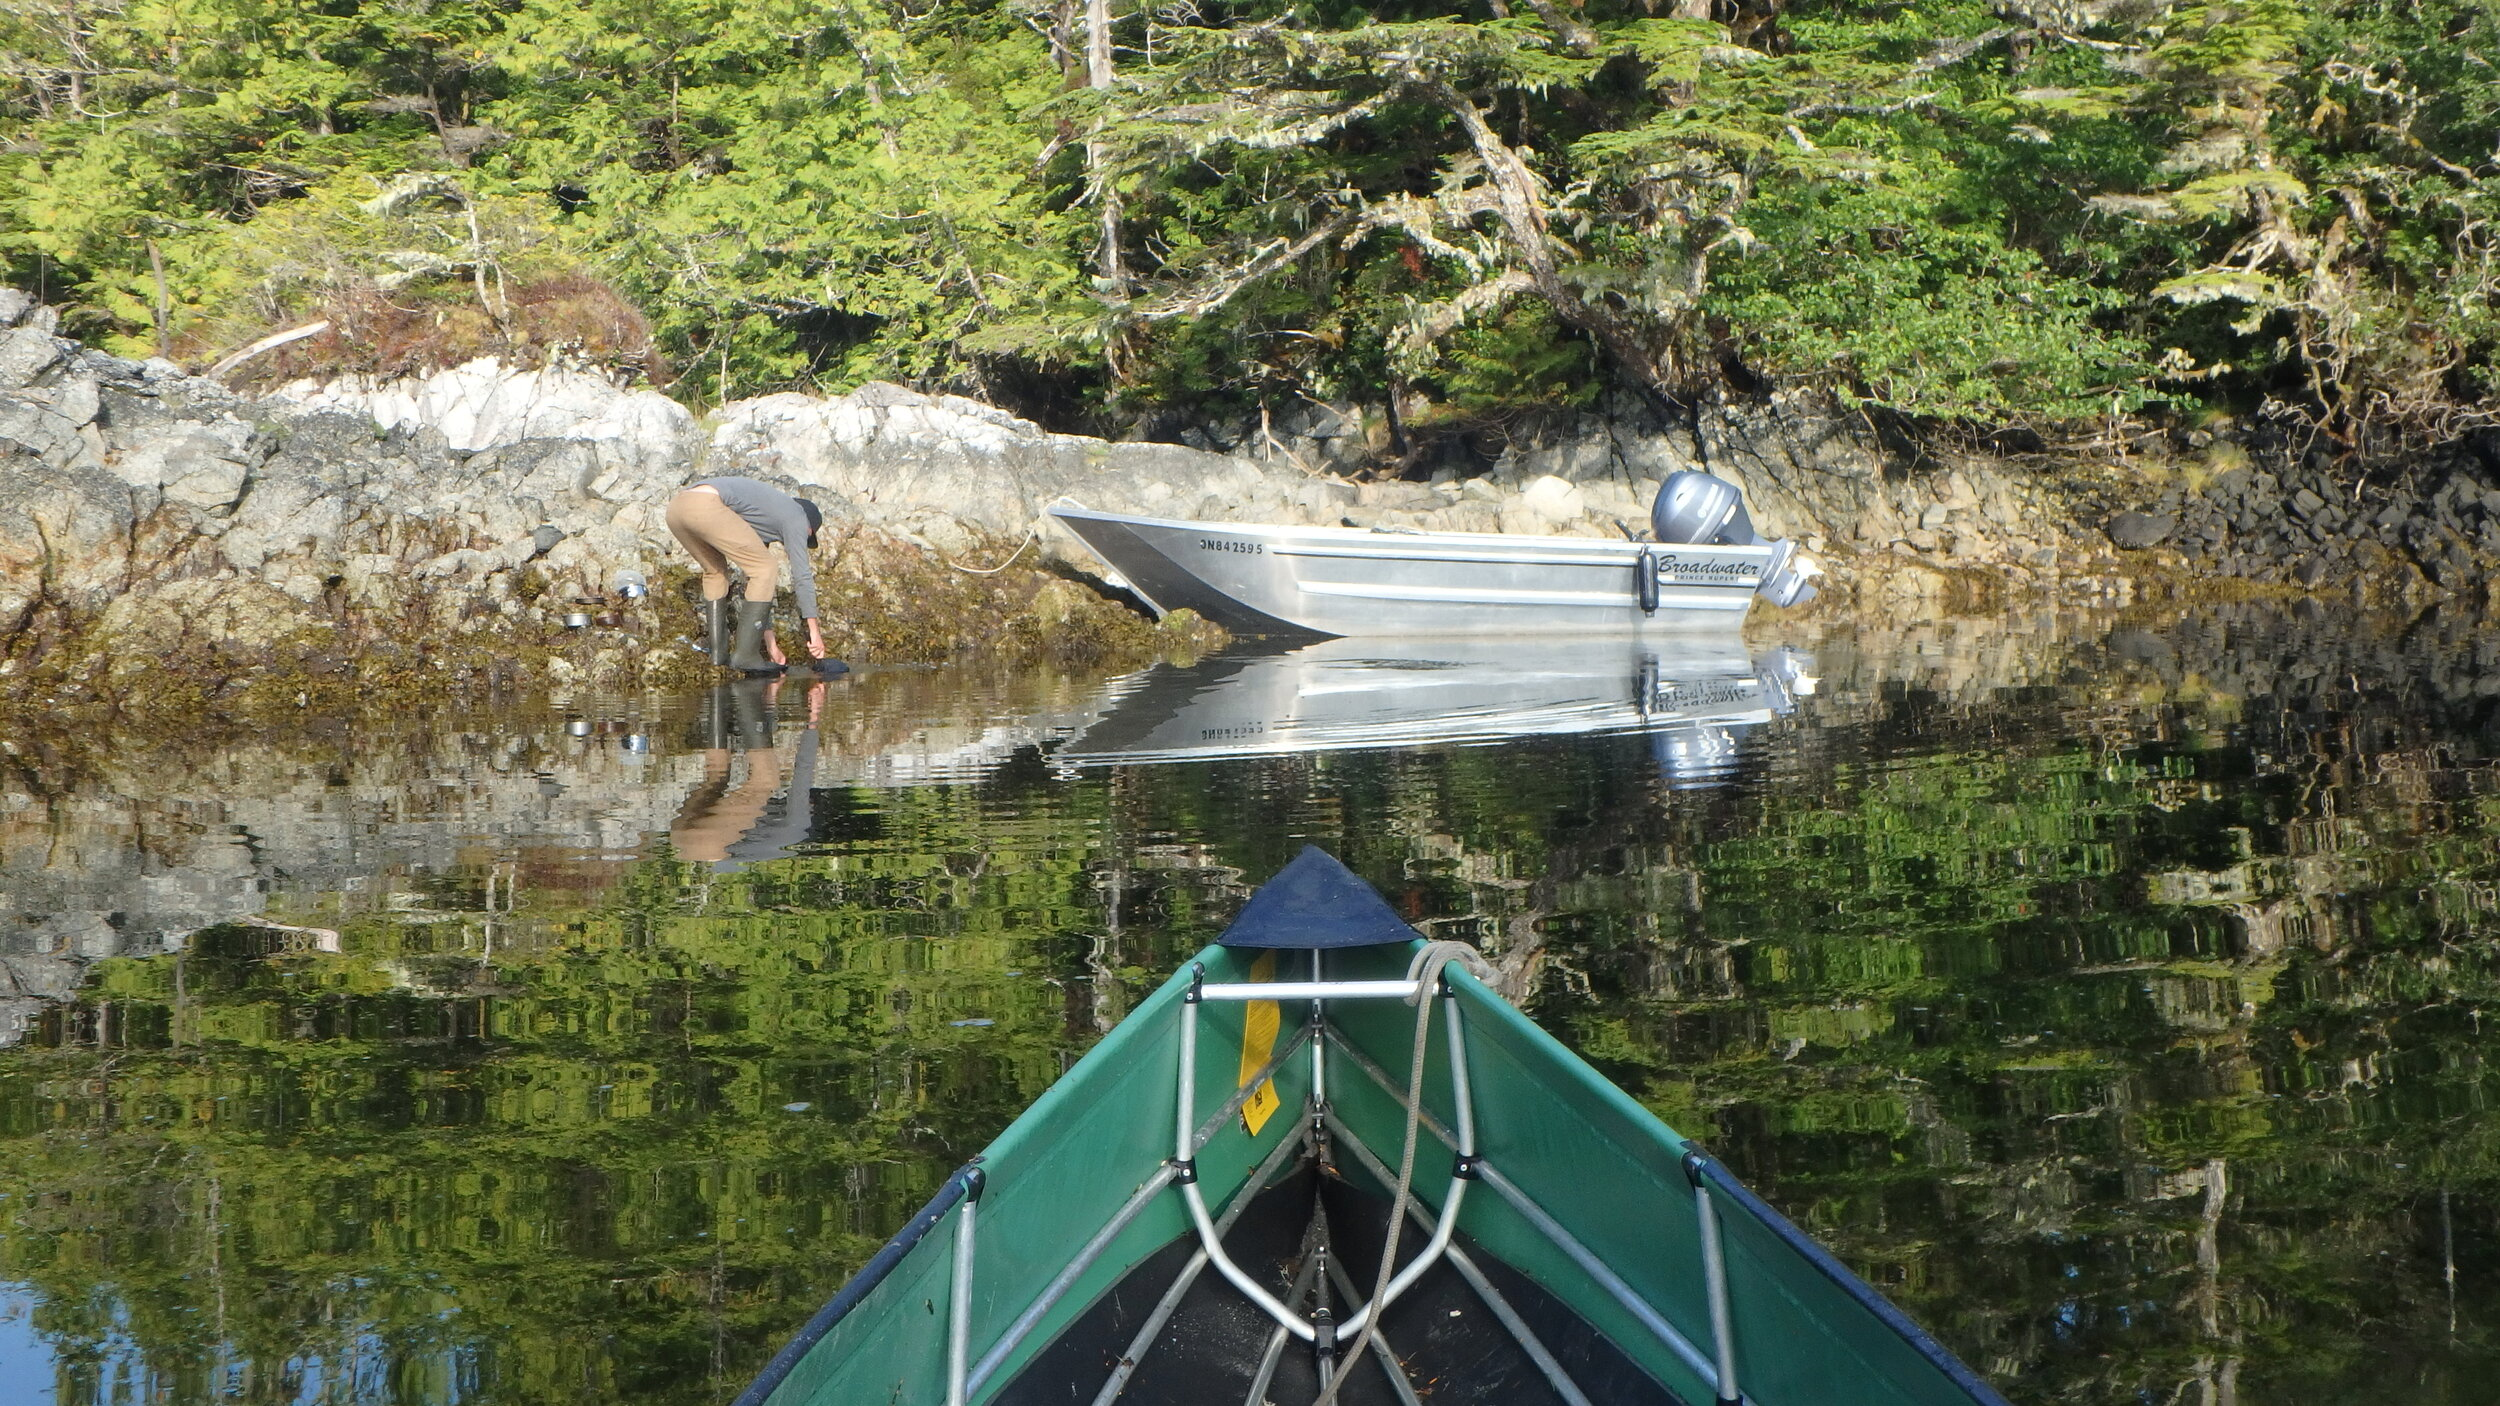 We made camp in a sheltered anchorage on northernmost island, and mostly moved about by canoe and aluminum skiff.